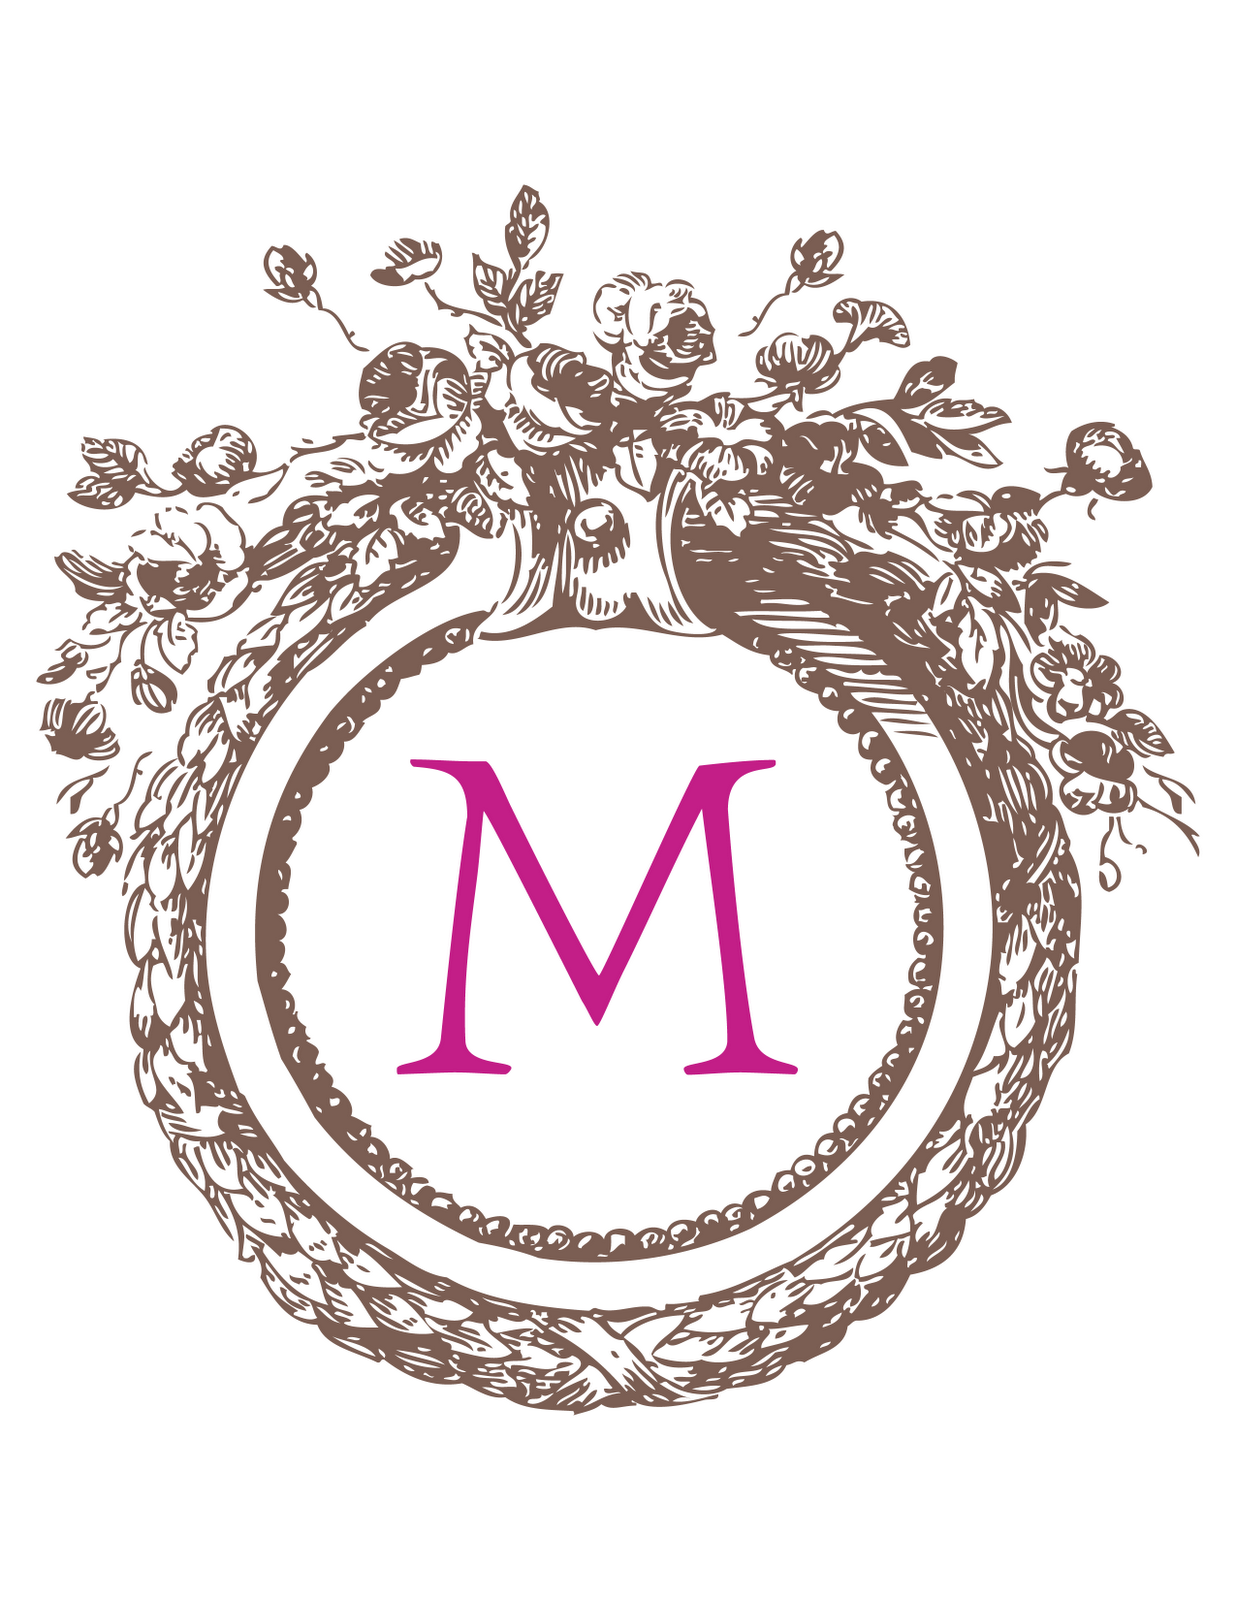 8 Best Images of Create Your Own Monogram Free Printable - Print ...